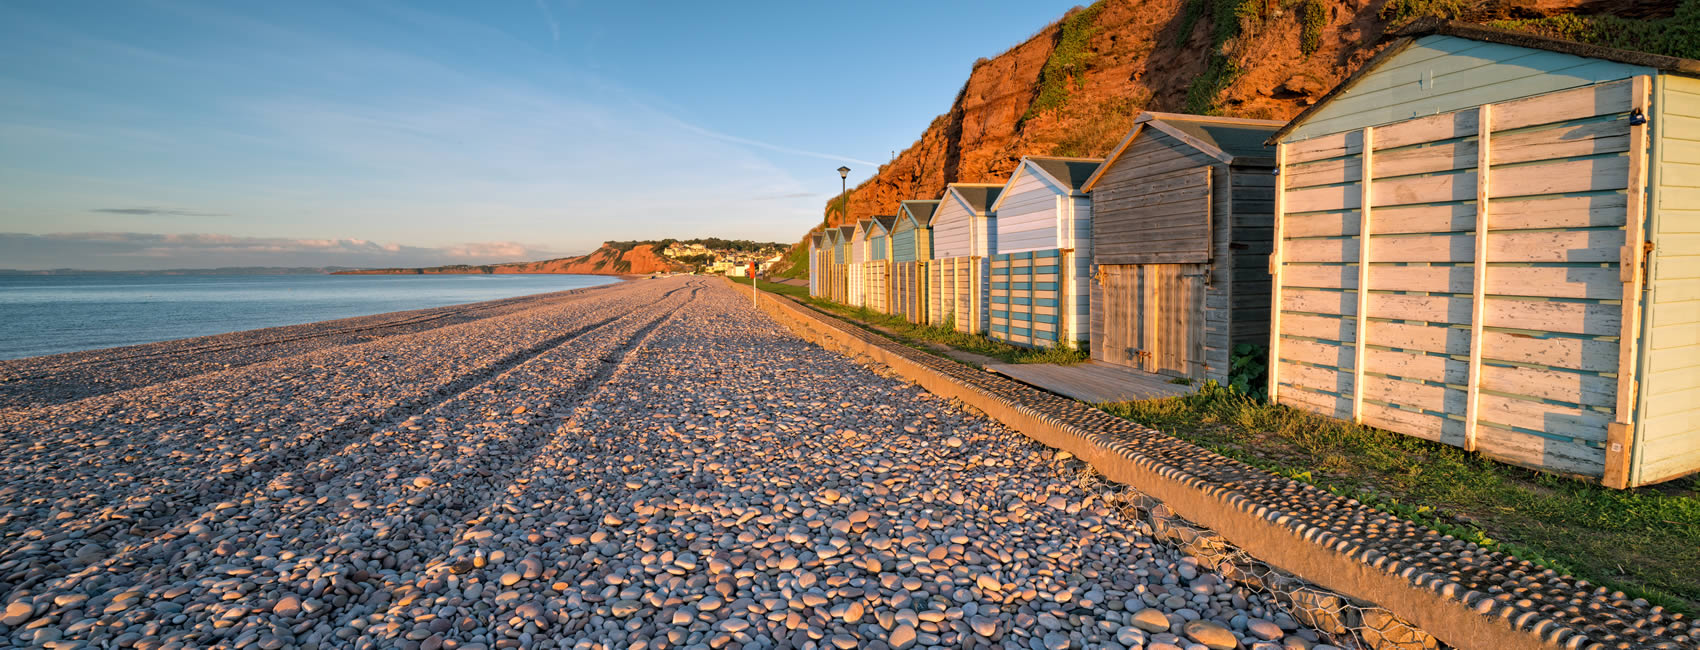 Budleigh Salterton Beach rocks and huts